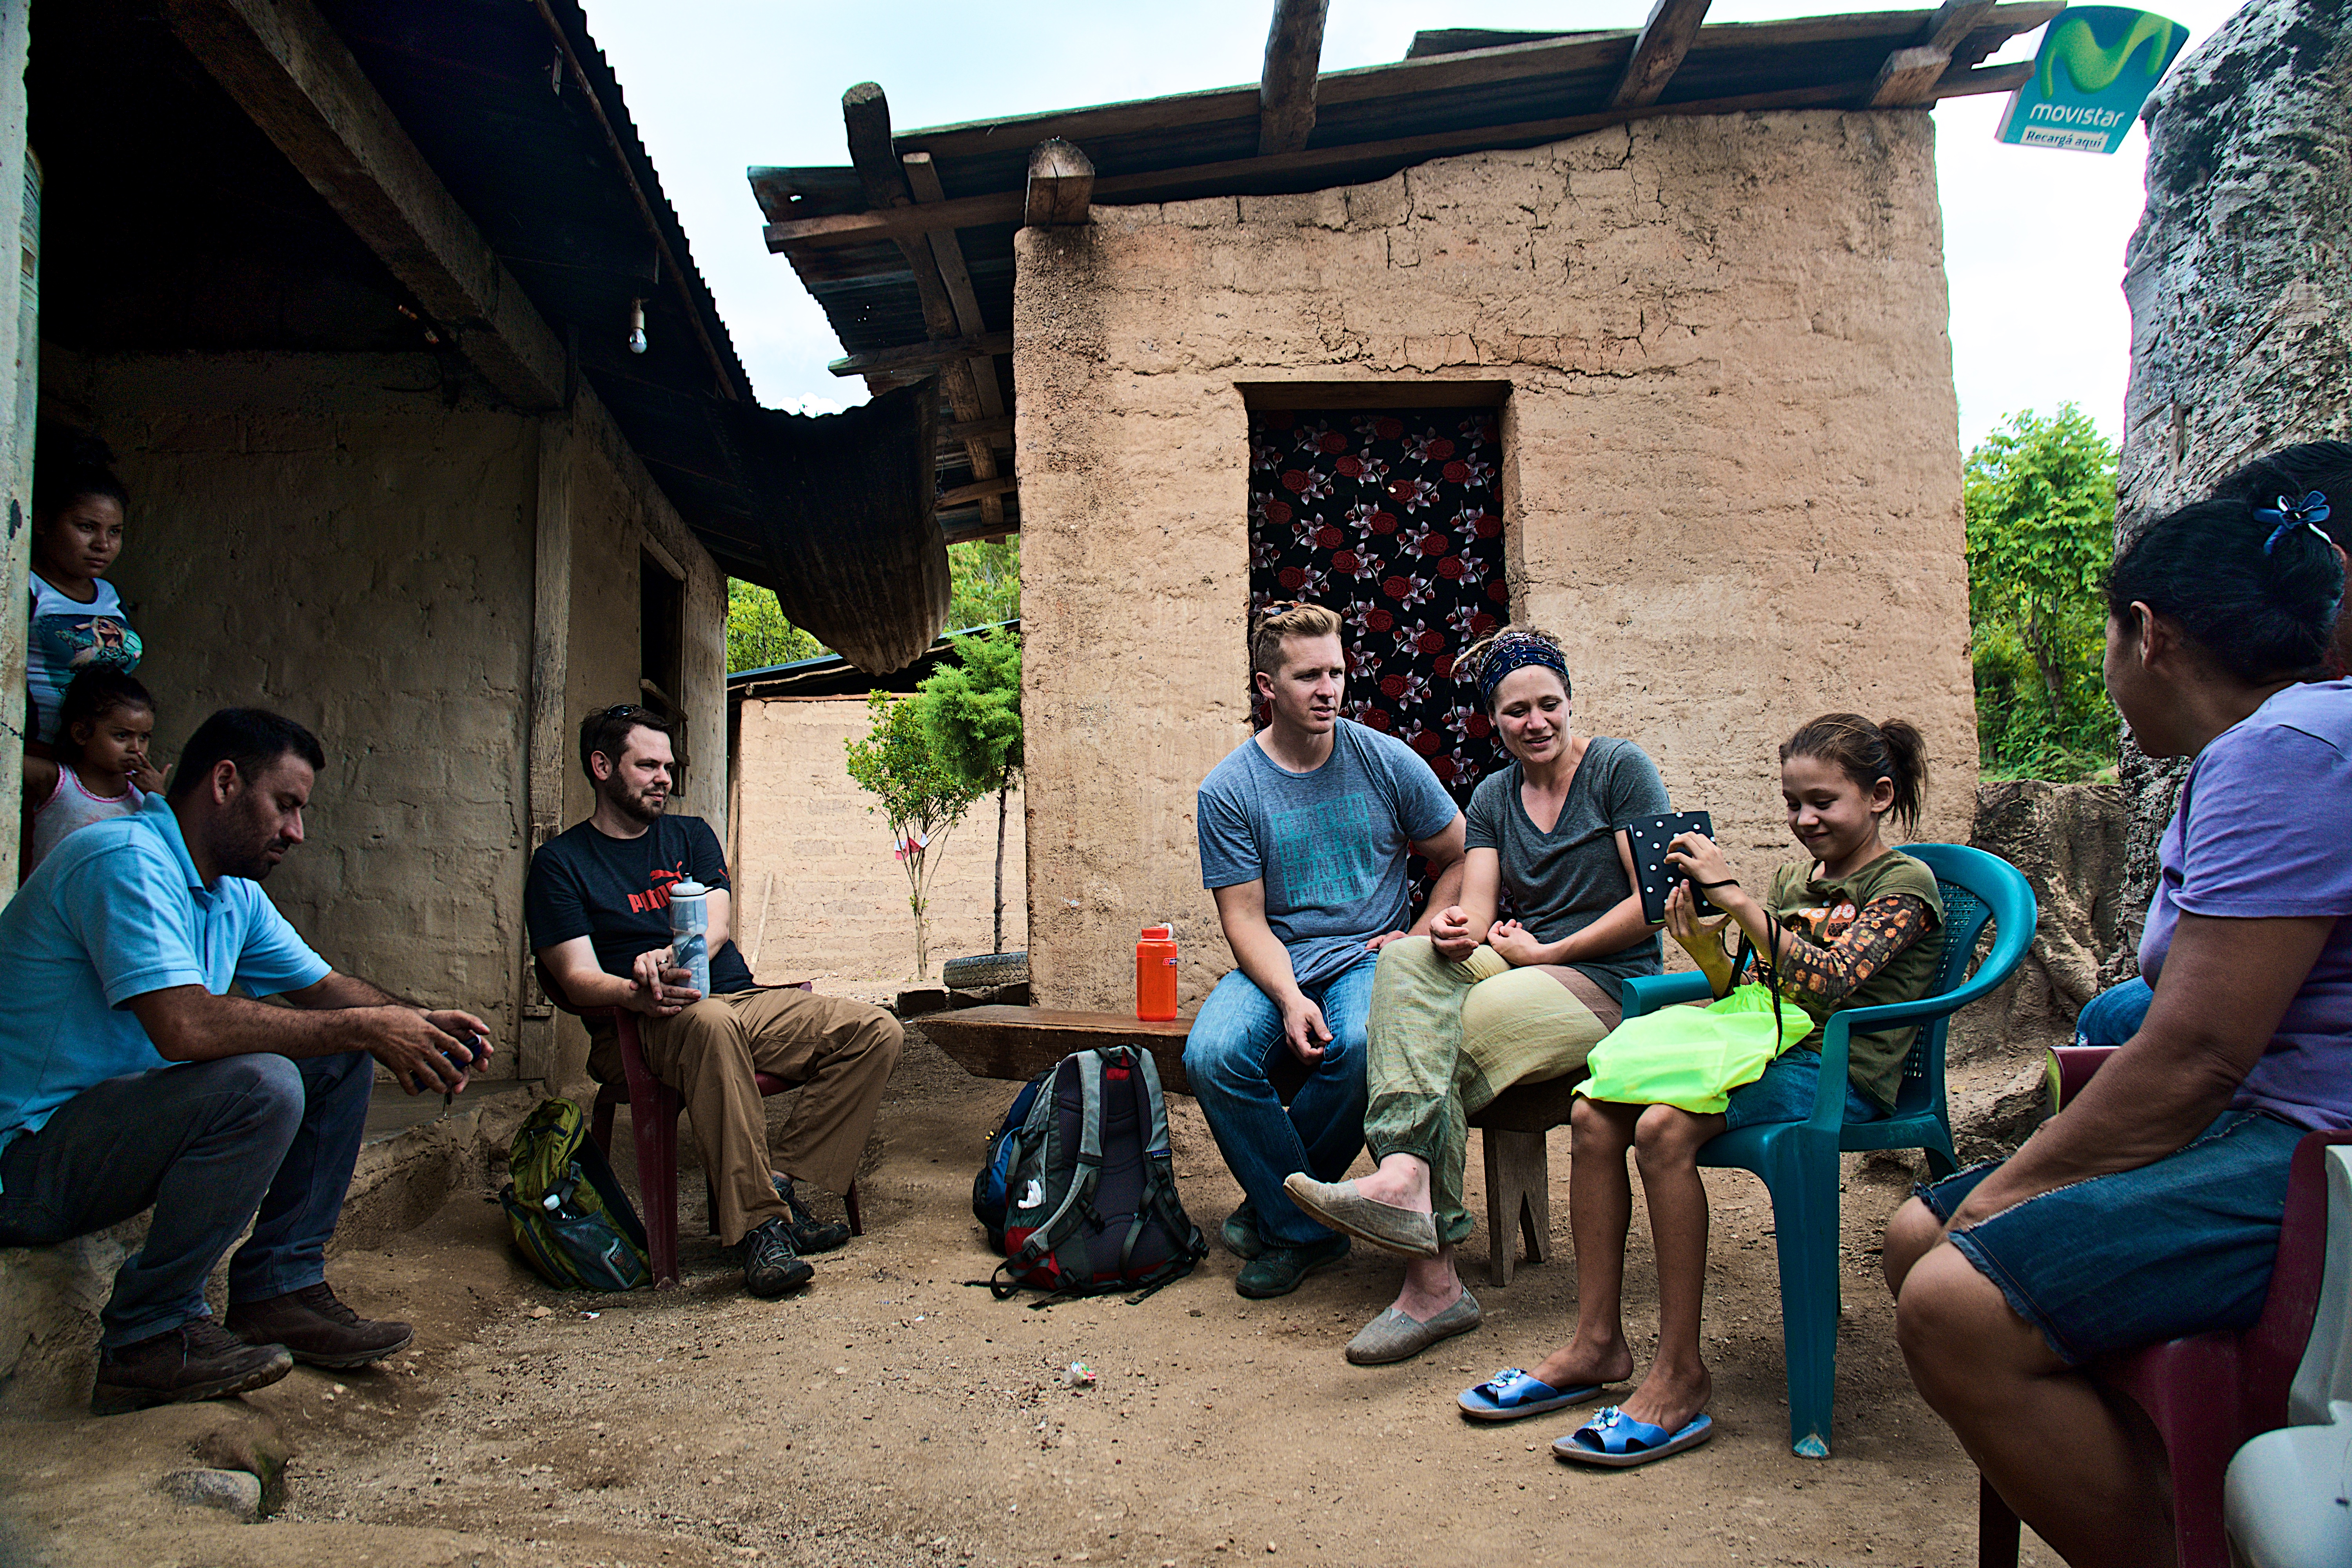 Looking Back at our First Trip to Nicaragua